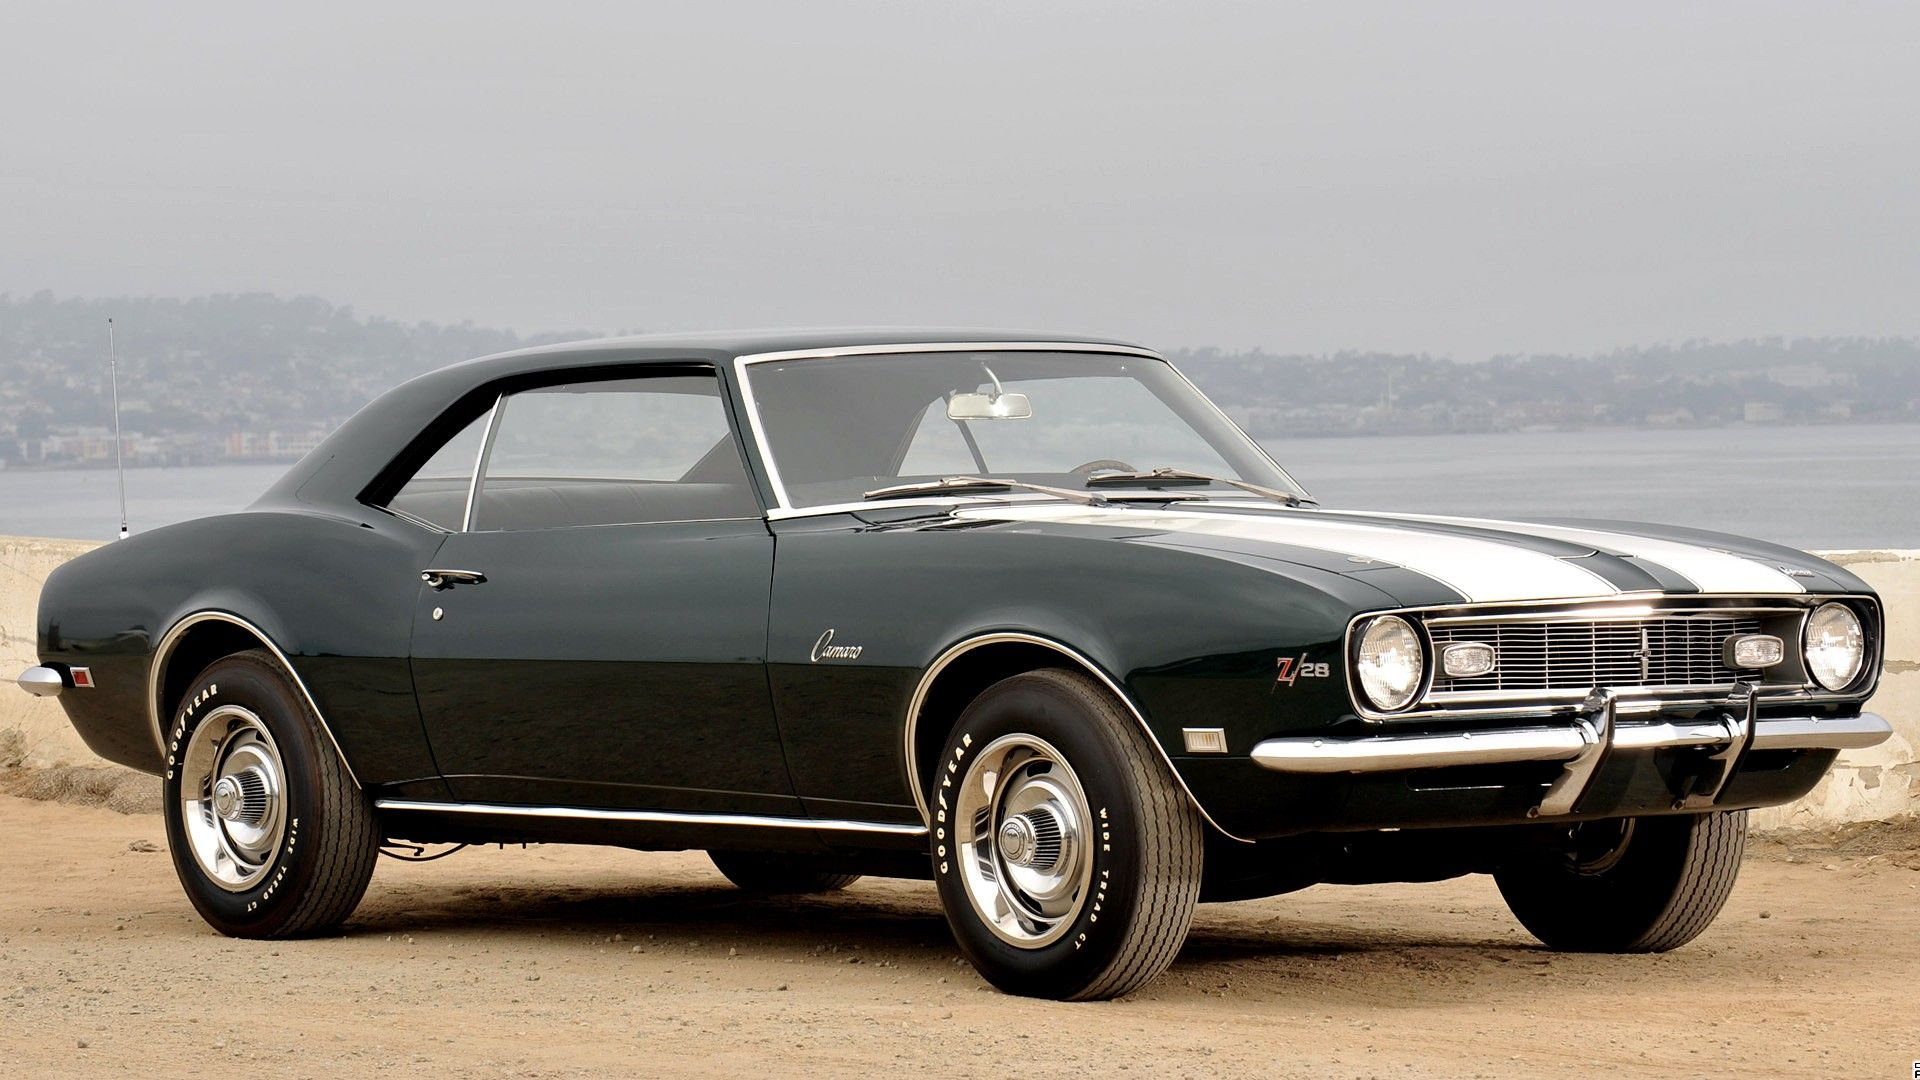 classic muscle cars - Google Search | Classics and Muscle ...